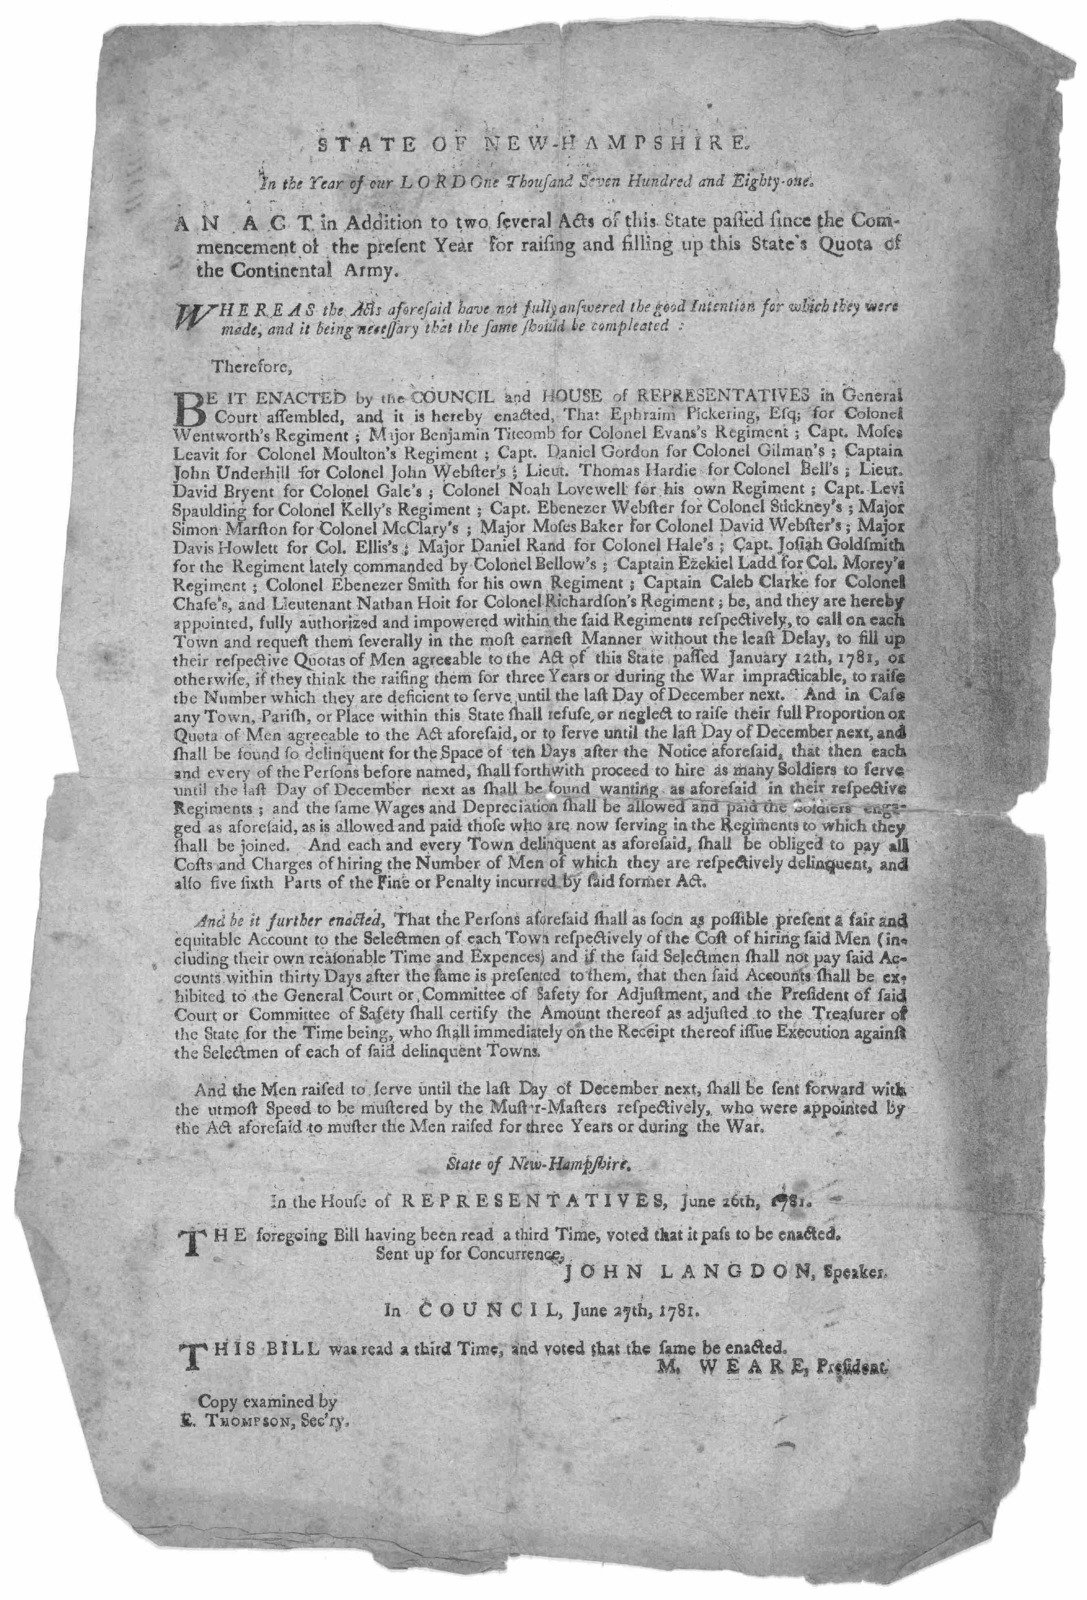 State of New Hampshire. In the year of our Lord one thousand seven hundred and eighty-one. An act in addition to two several acts of this state passed since the commencement of the present year for raising and filling up this State's quota of th